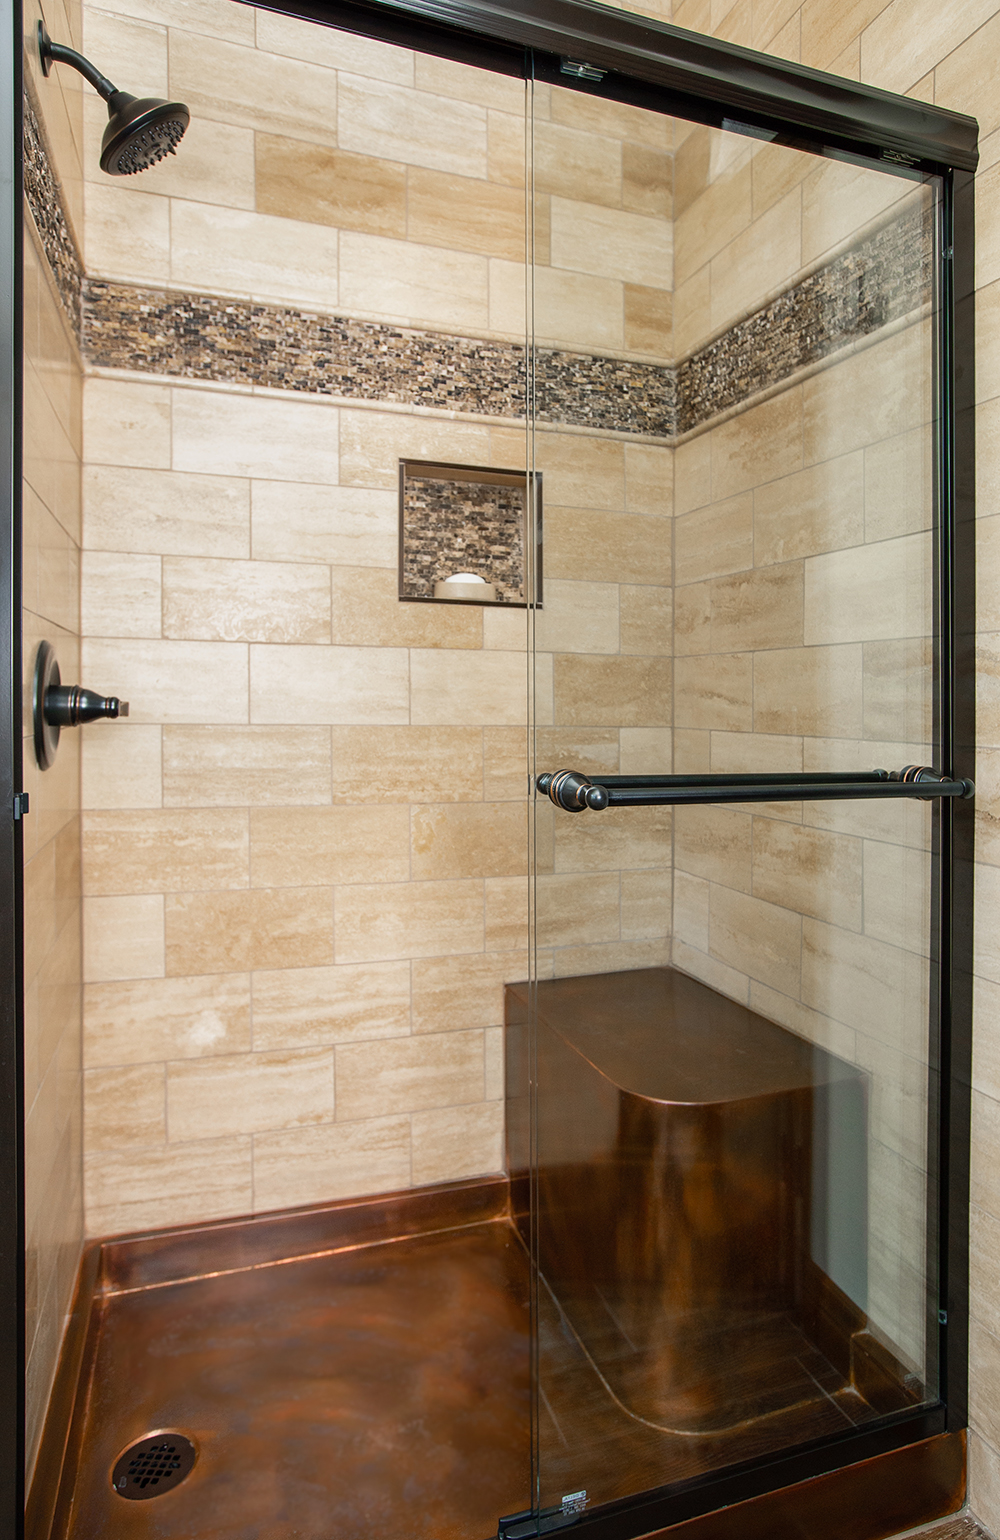 Copper Shower Base 60 X 40 4 With 15